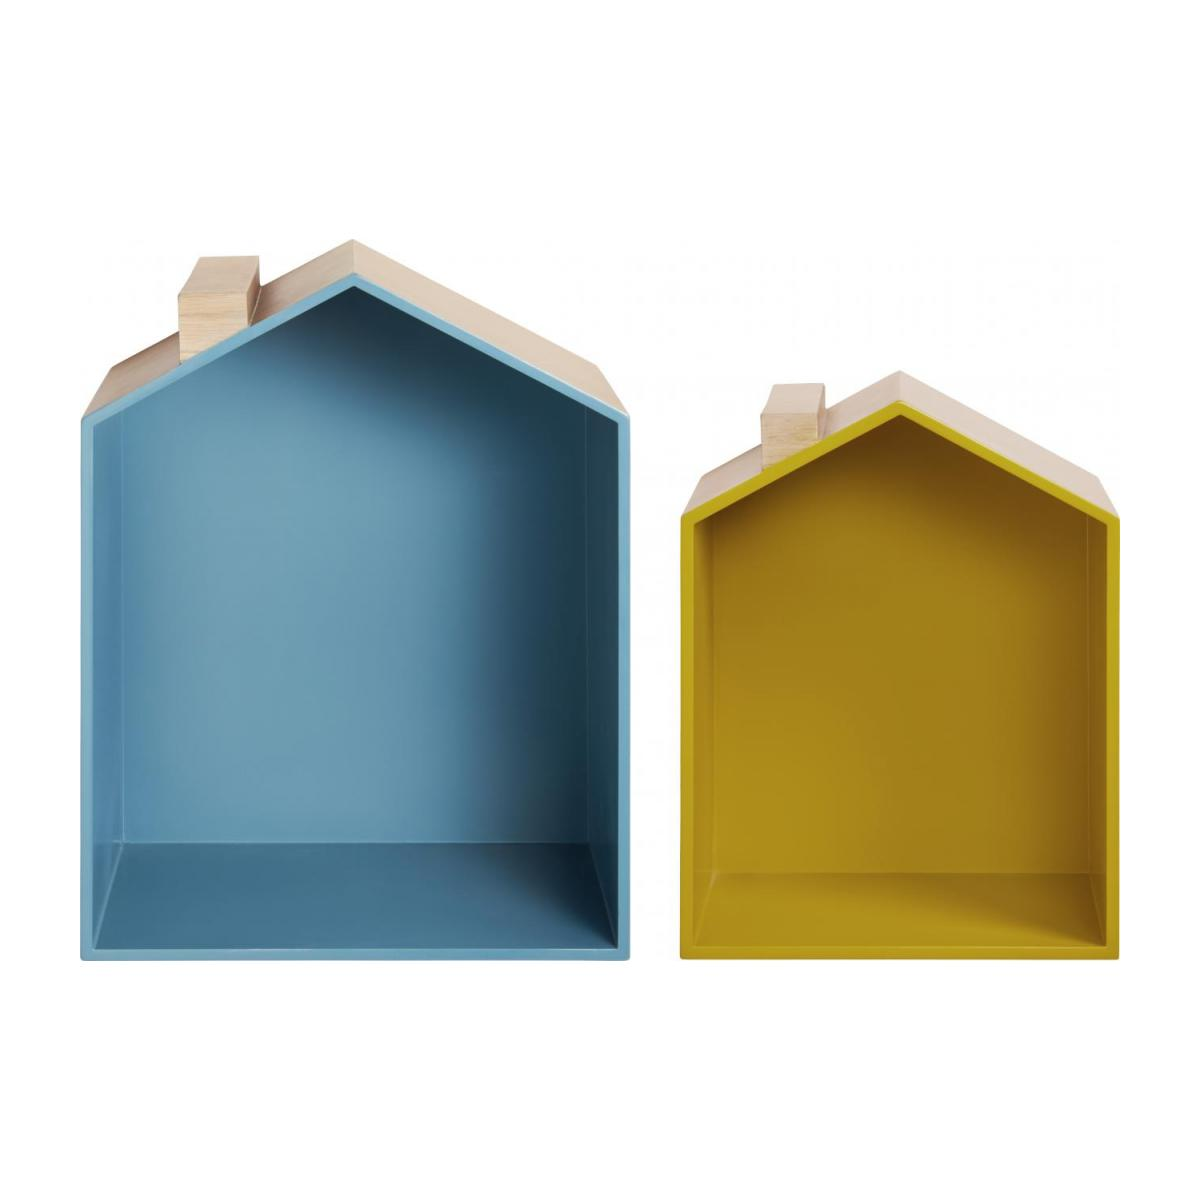 Set of 2 shelves made of oak, natural, grey-blue and yellow n°3